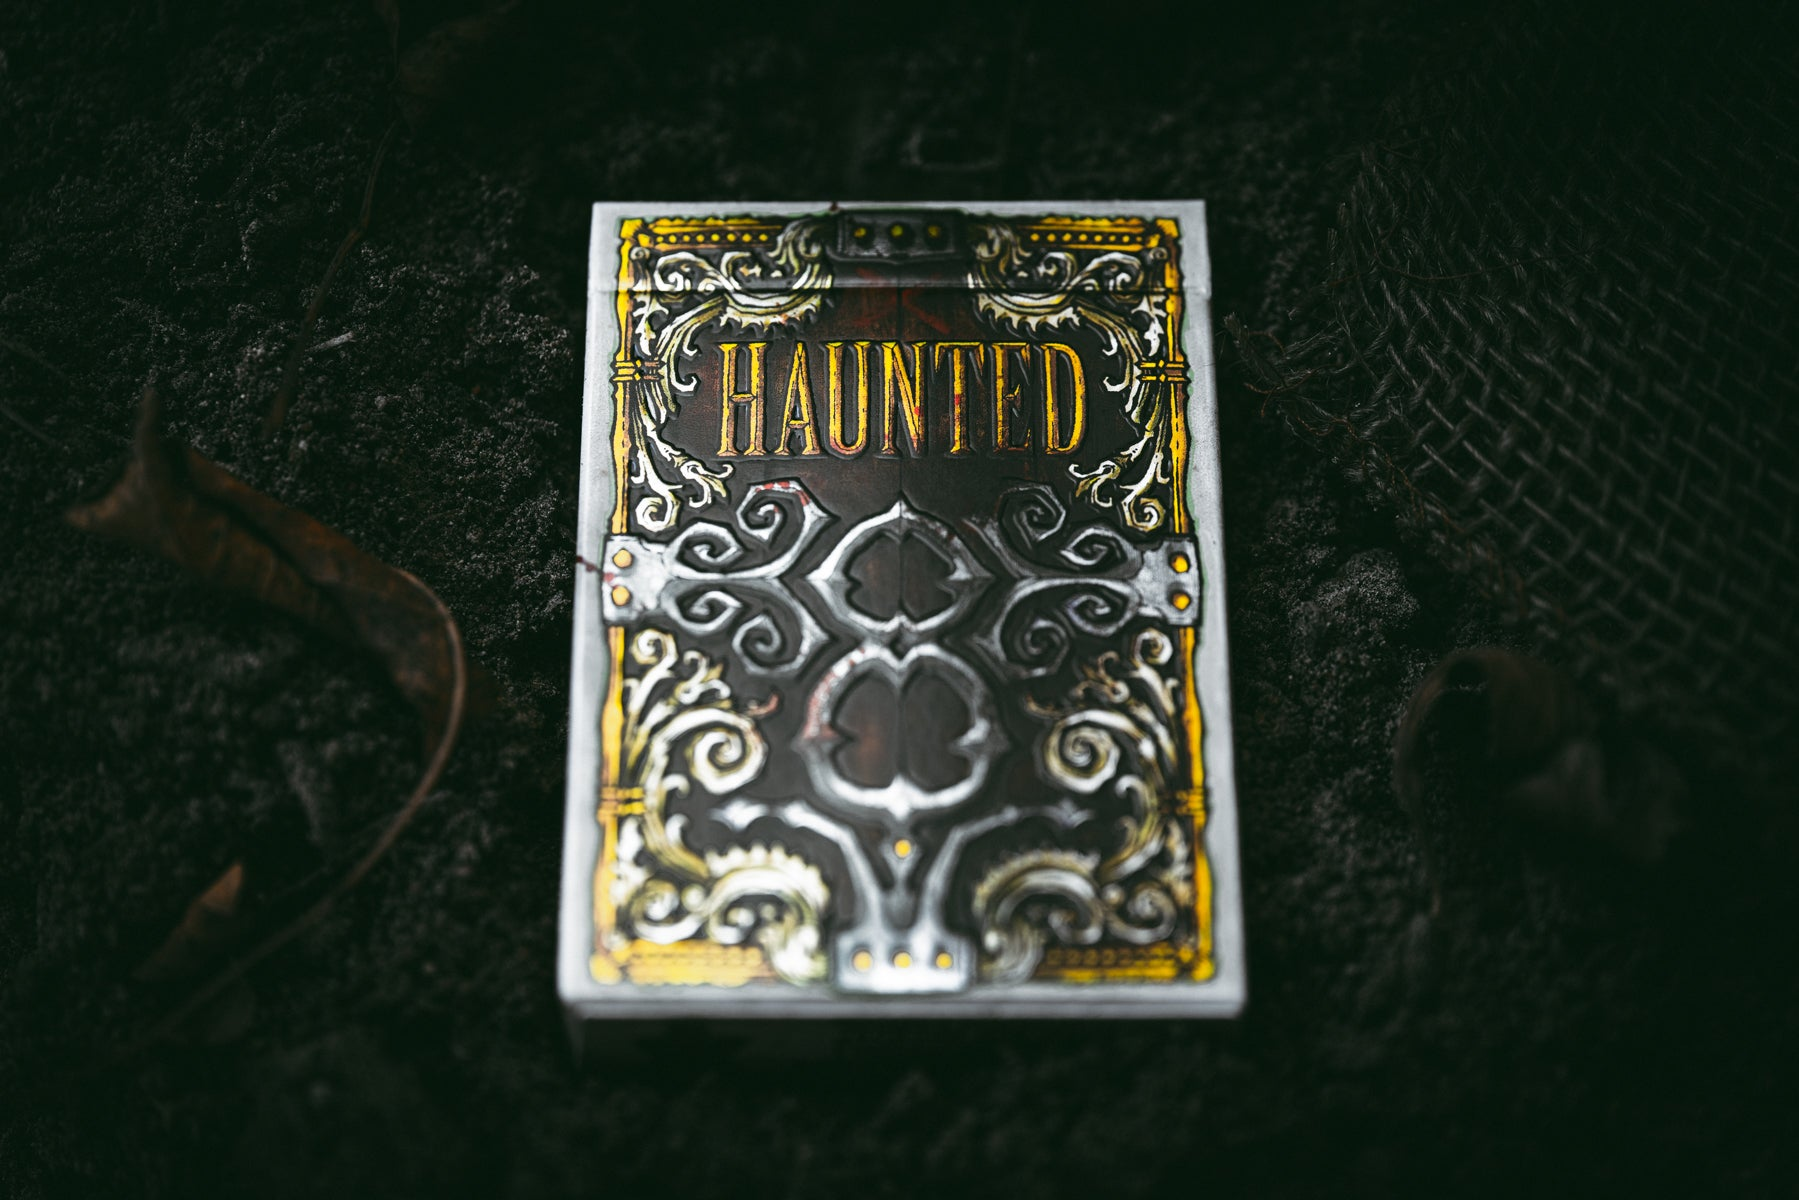 Haunted 8's - Standard Edition